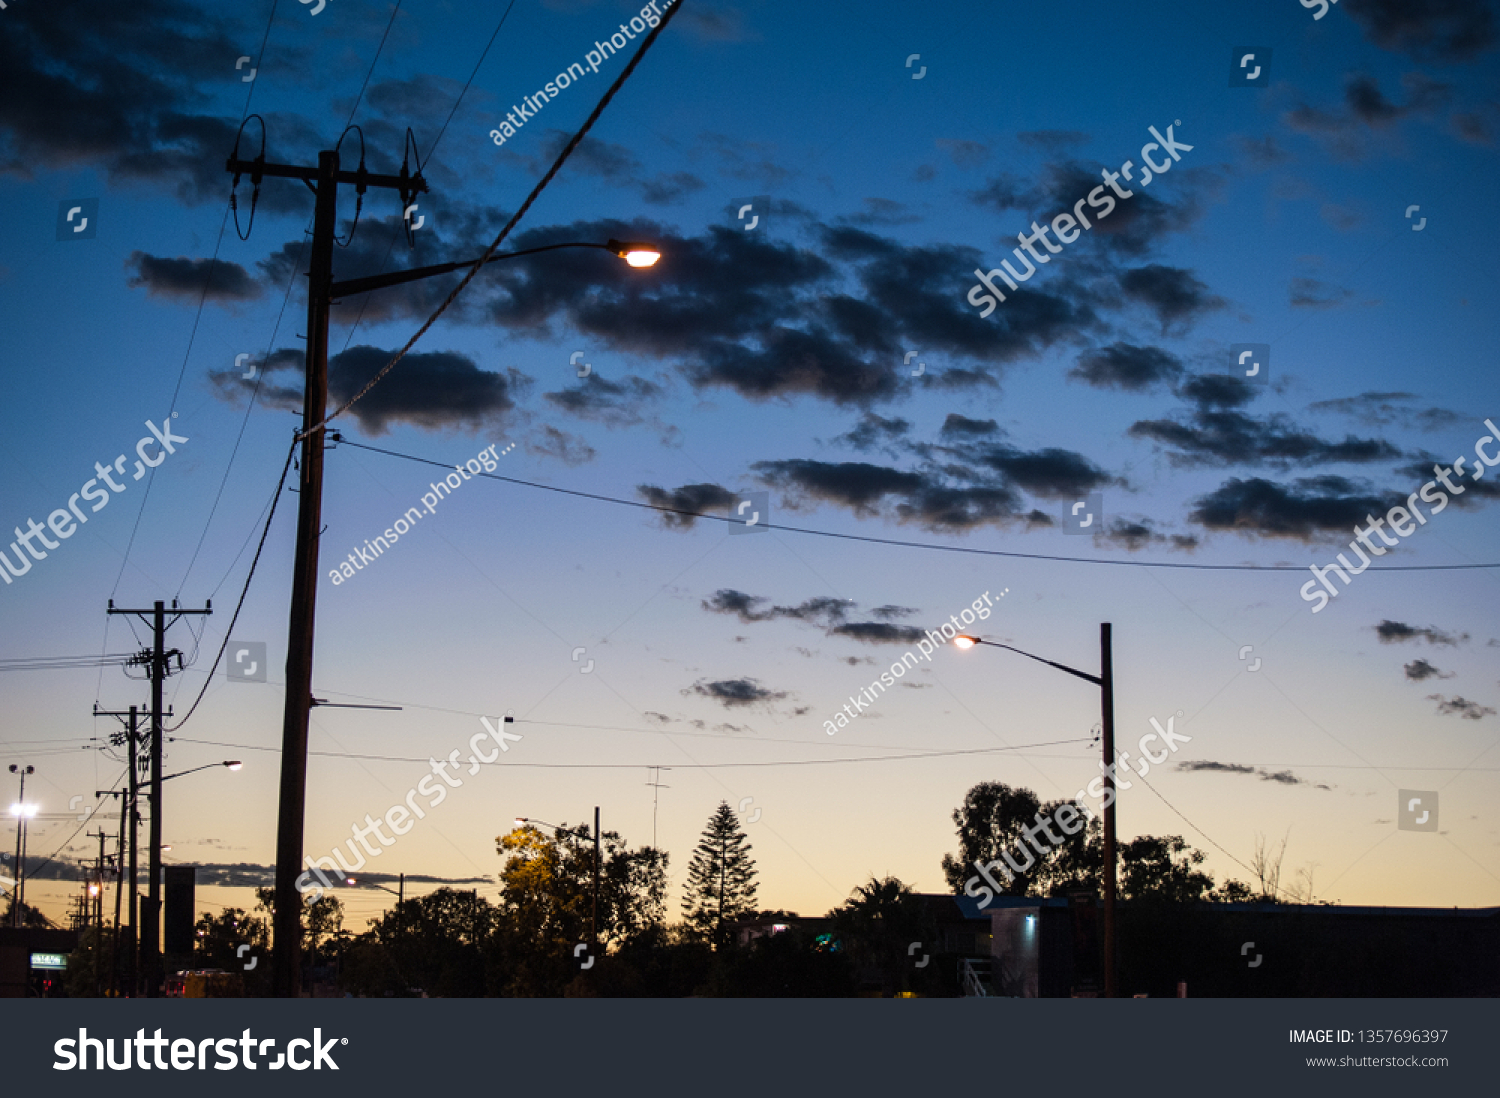 Sunrise in the town of Lightning Ridge creating silhouttes of the street lights, poles and power lines #1357696397